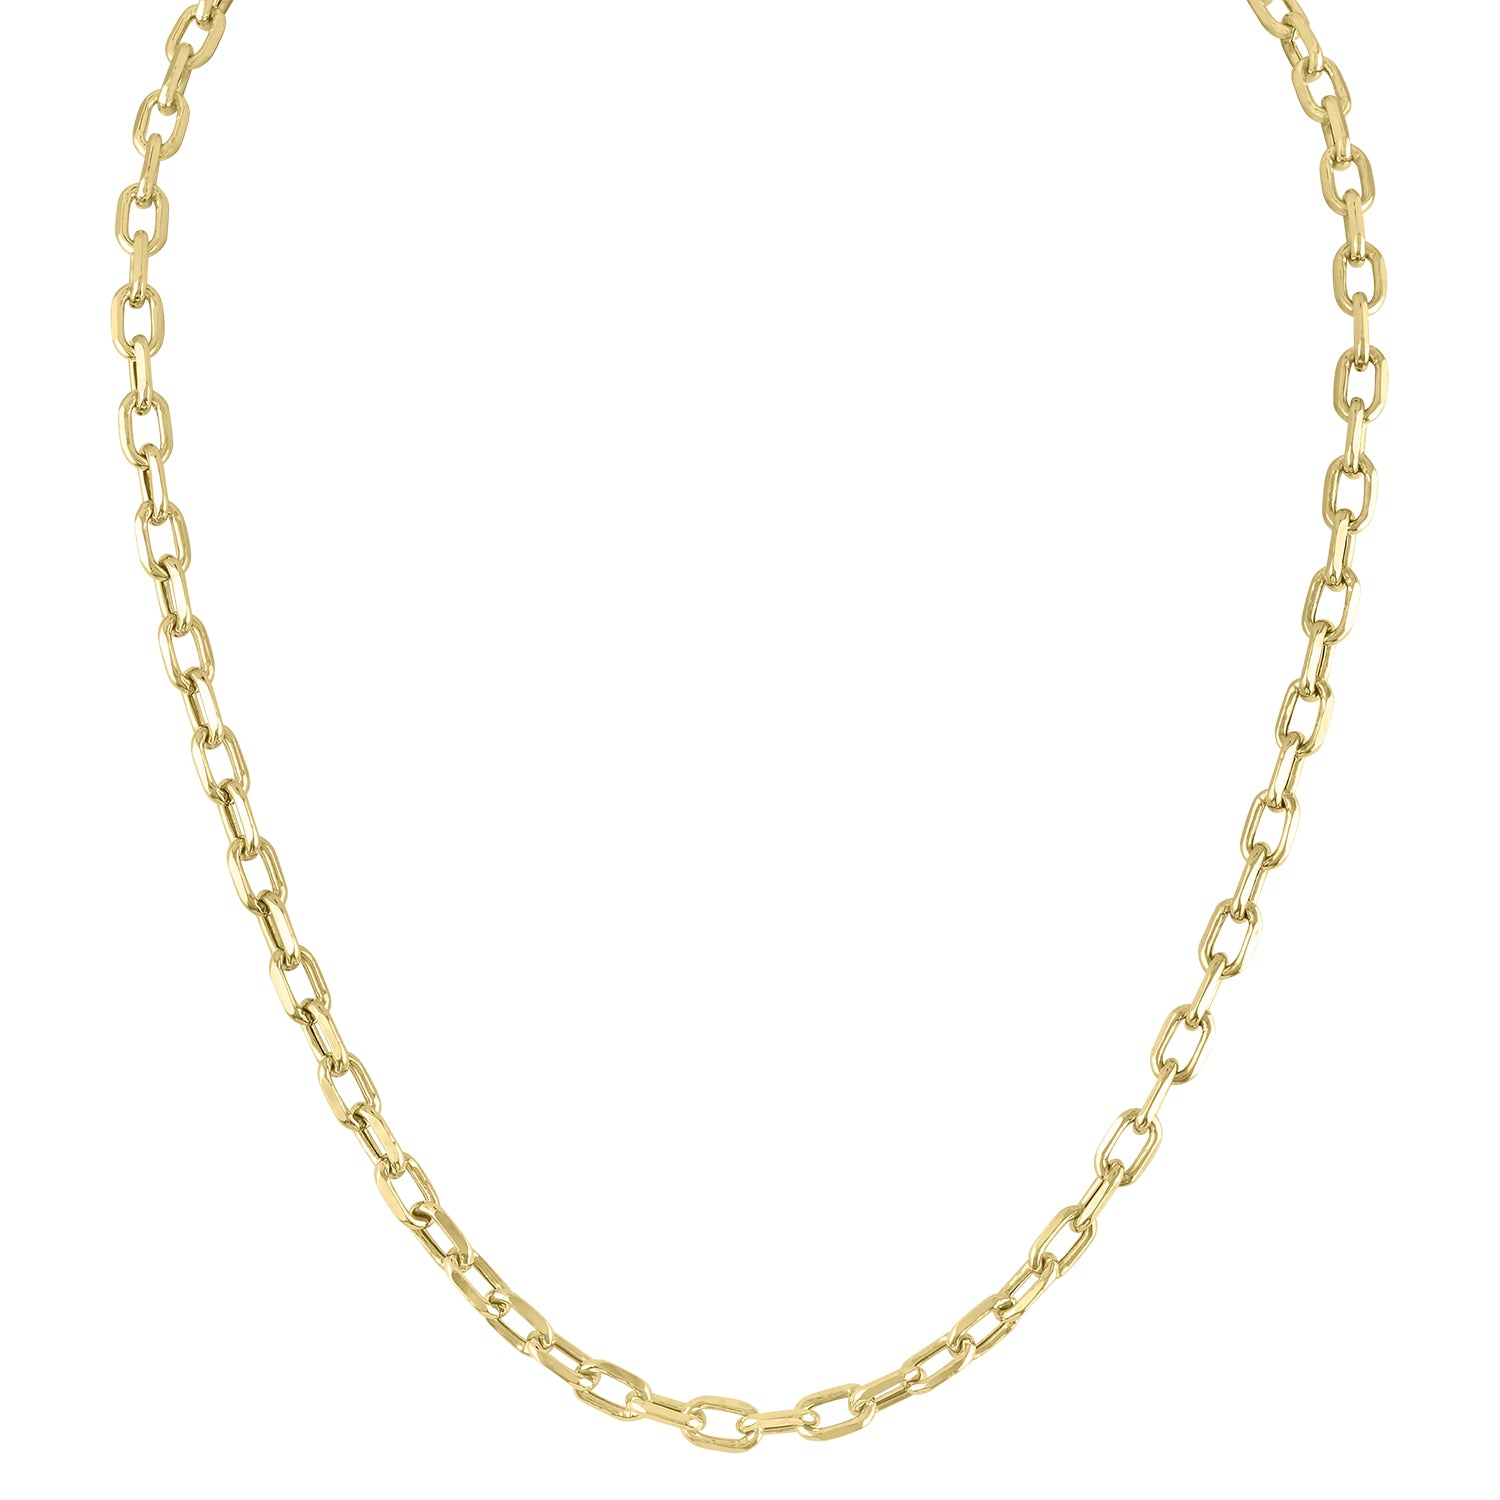 The Melissa Chain